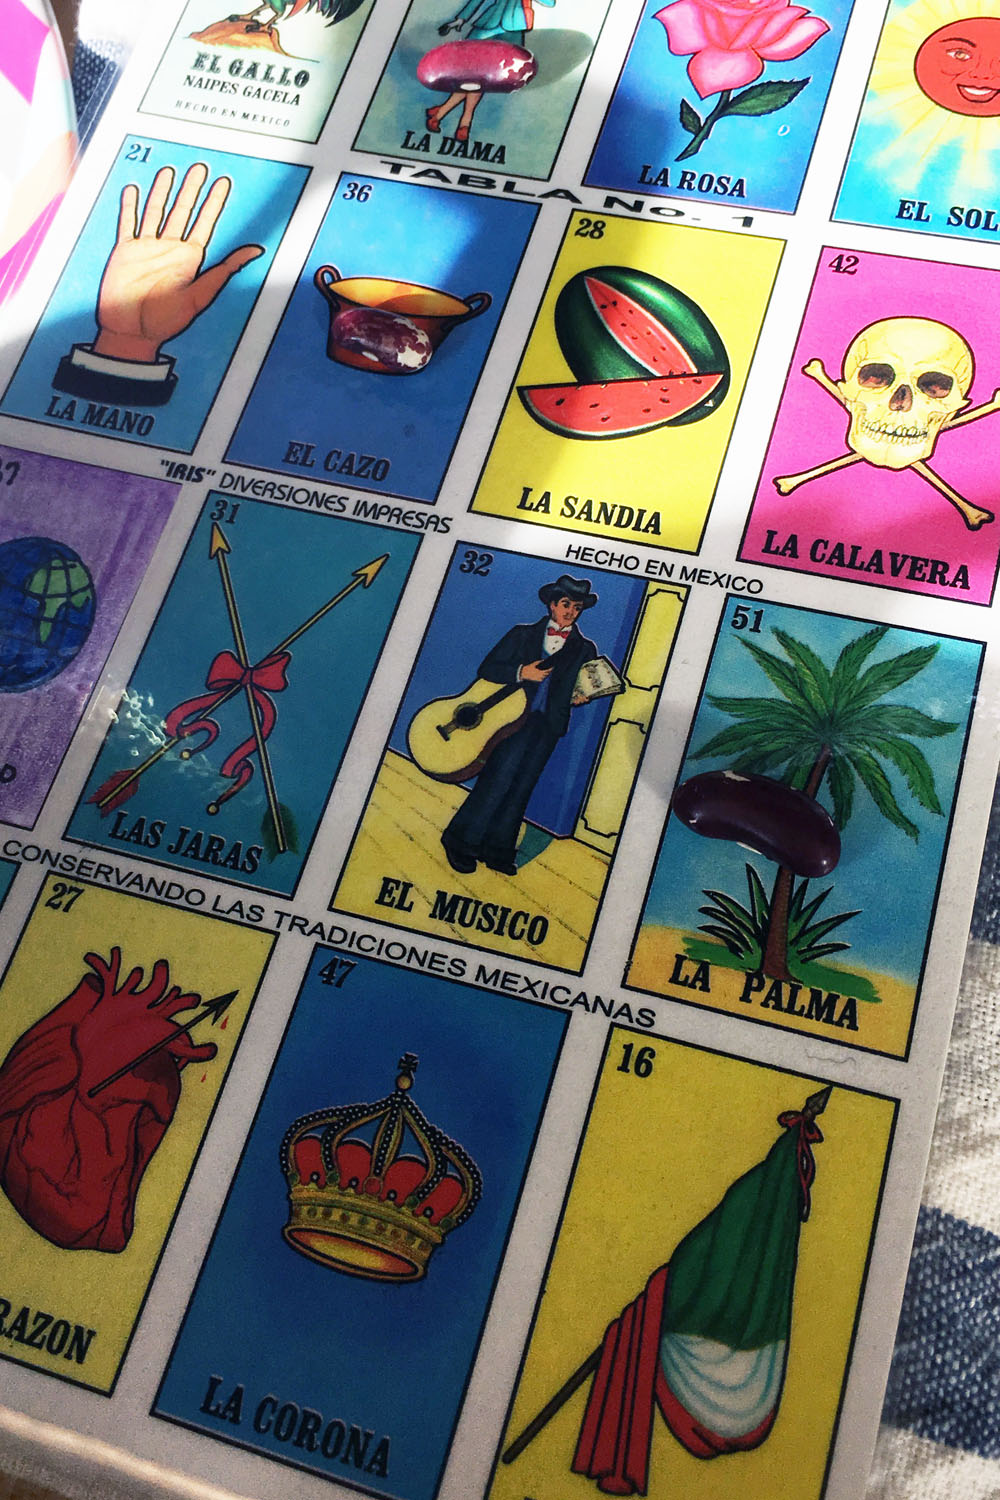 Our trip to Mexico wouldn't have been complete without a game of Lotería (similar to bingo), played with Jacob's Cattle beans to mark our lucky numbers and images.